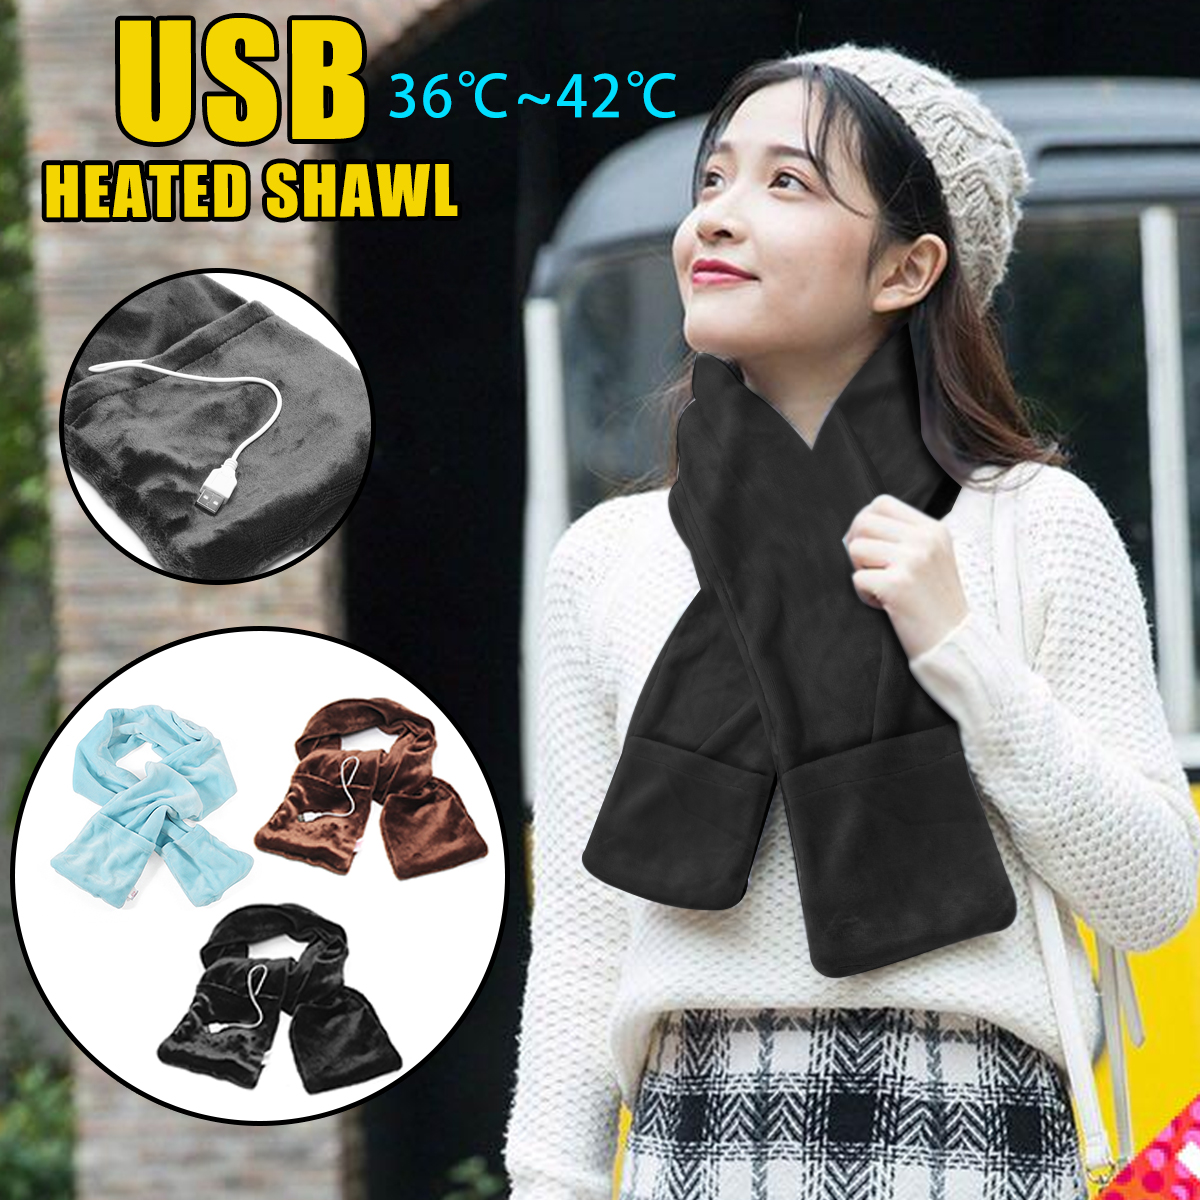 Electric Heated Shawl Mobile Heating Scarf Winter Warming Neck Hand Portable USB Powered Soft Ourdoor Indoor Car Home 18x148cm cute rabbit shaped usb powered heated foot warming soft slippers pink pair